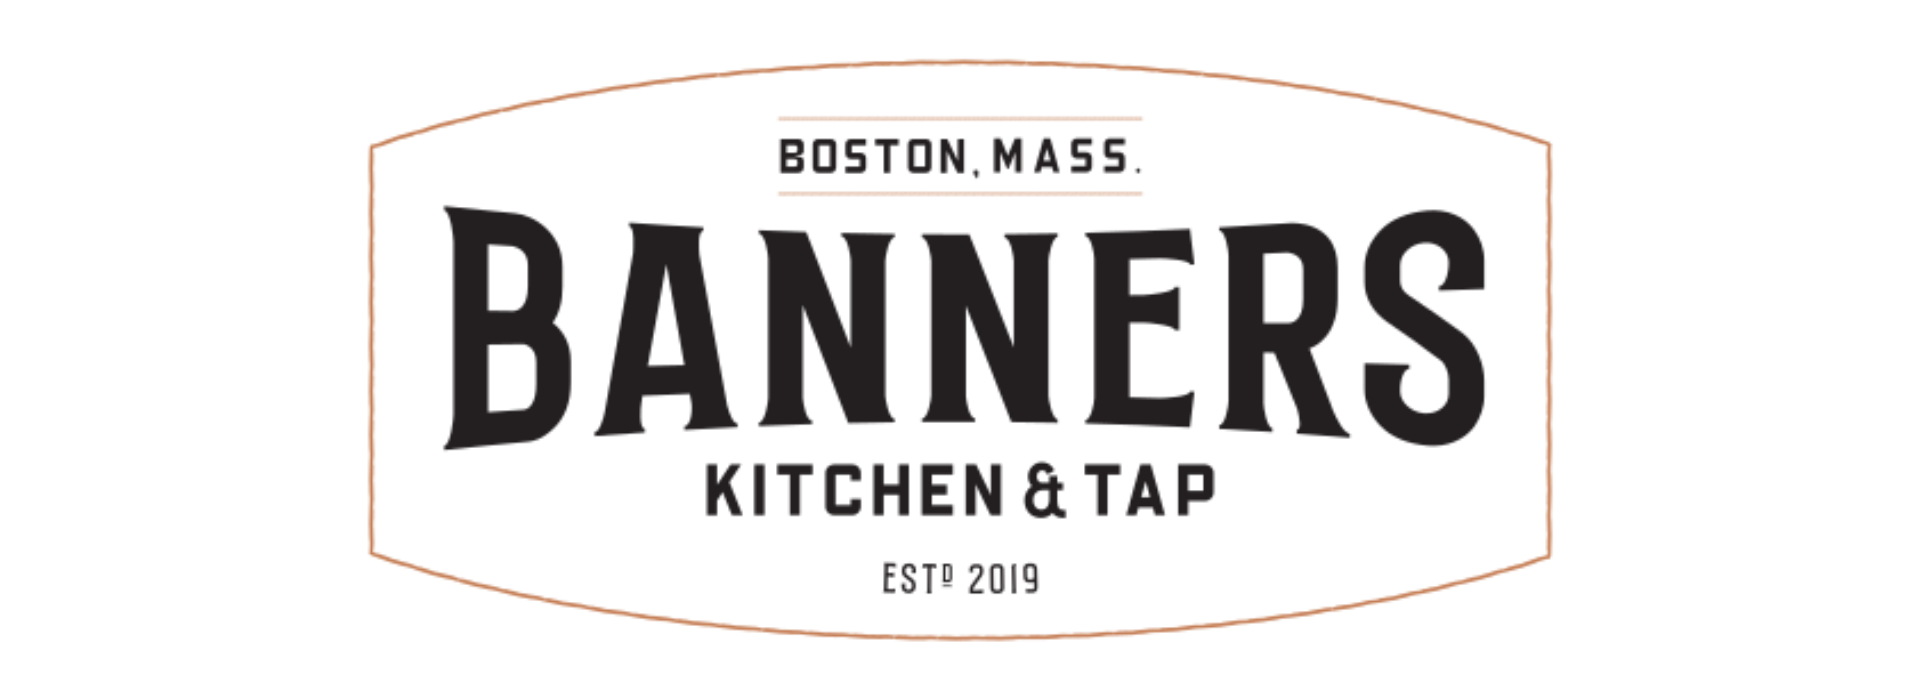 Banners Kitchen & Tap jobs